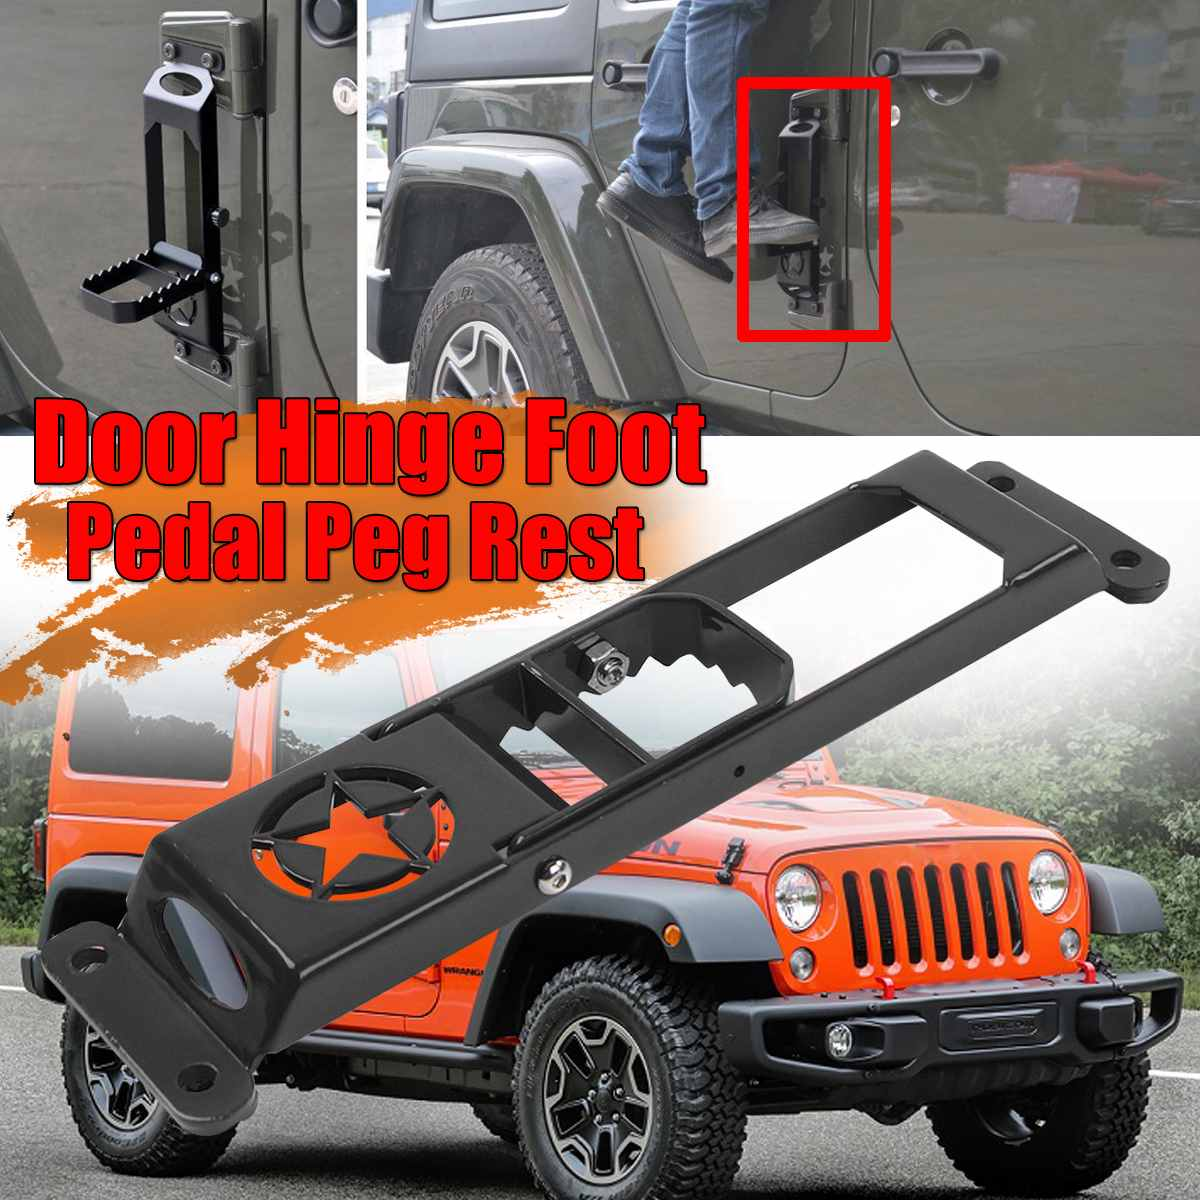 Exterior Door Panels & Frames Back To Search Resultsautomobiles & Motorcycles Systematic New Car Folding Door Hinge Foot Pedal Peg Rest For Jeep For Wrangler Jk 2007-2017 2/4dr Door Hinge Step Metal Folding Foot Peg